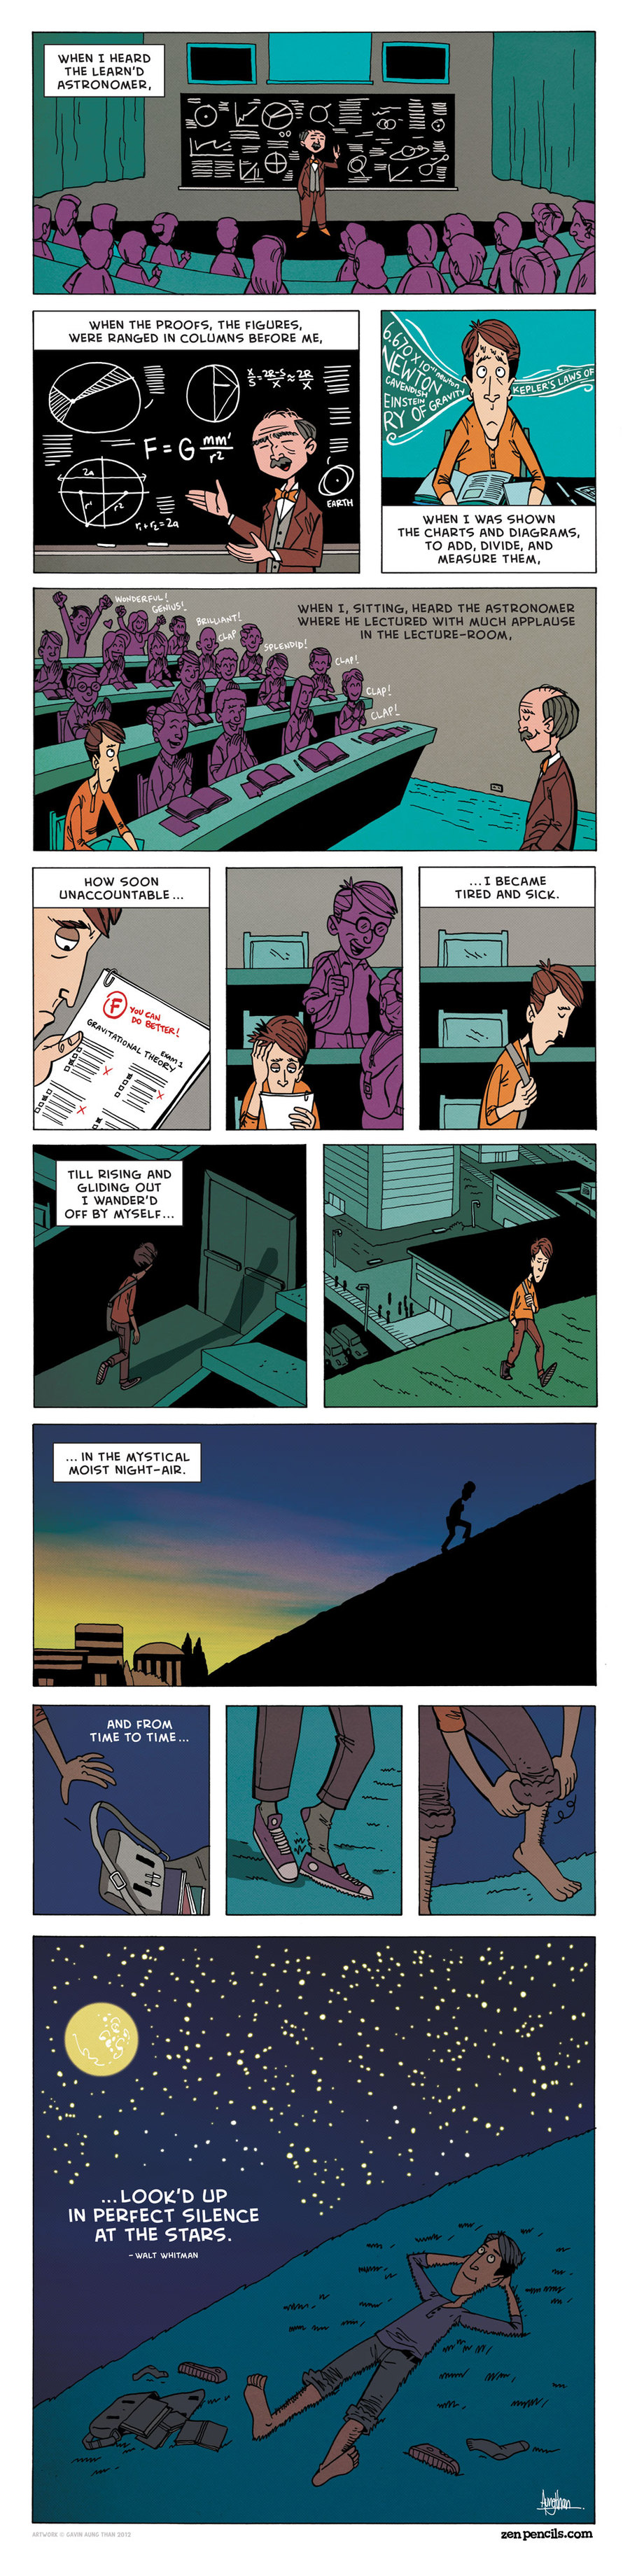 Zen Pencils for Jan 17, 2014 Comic Strip